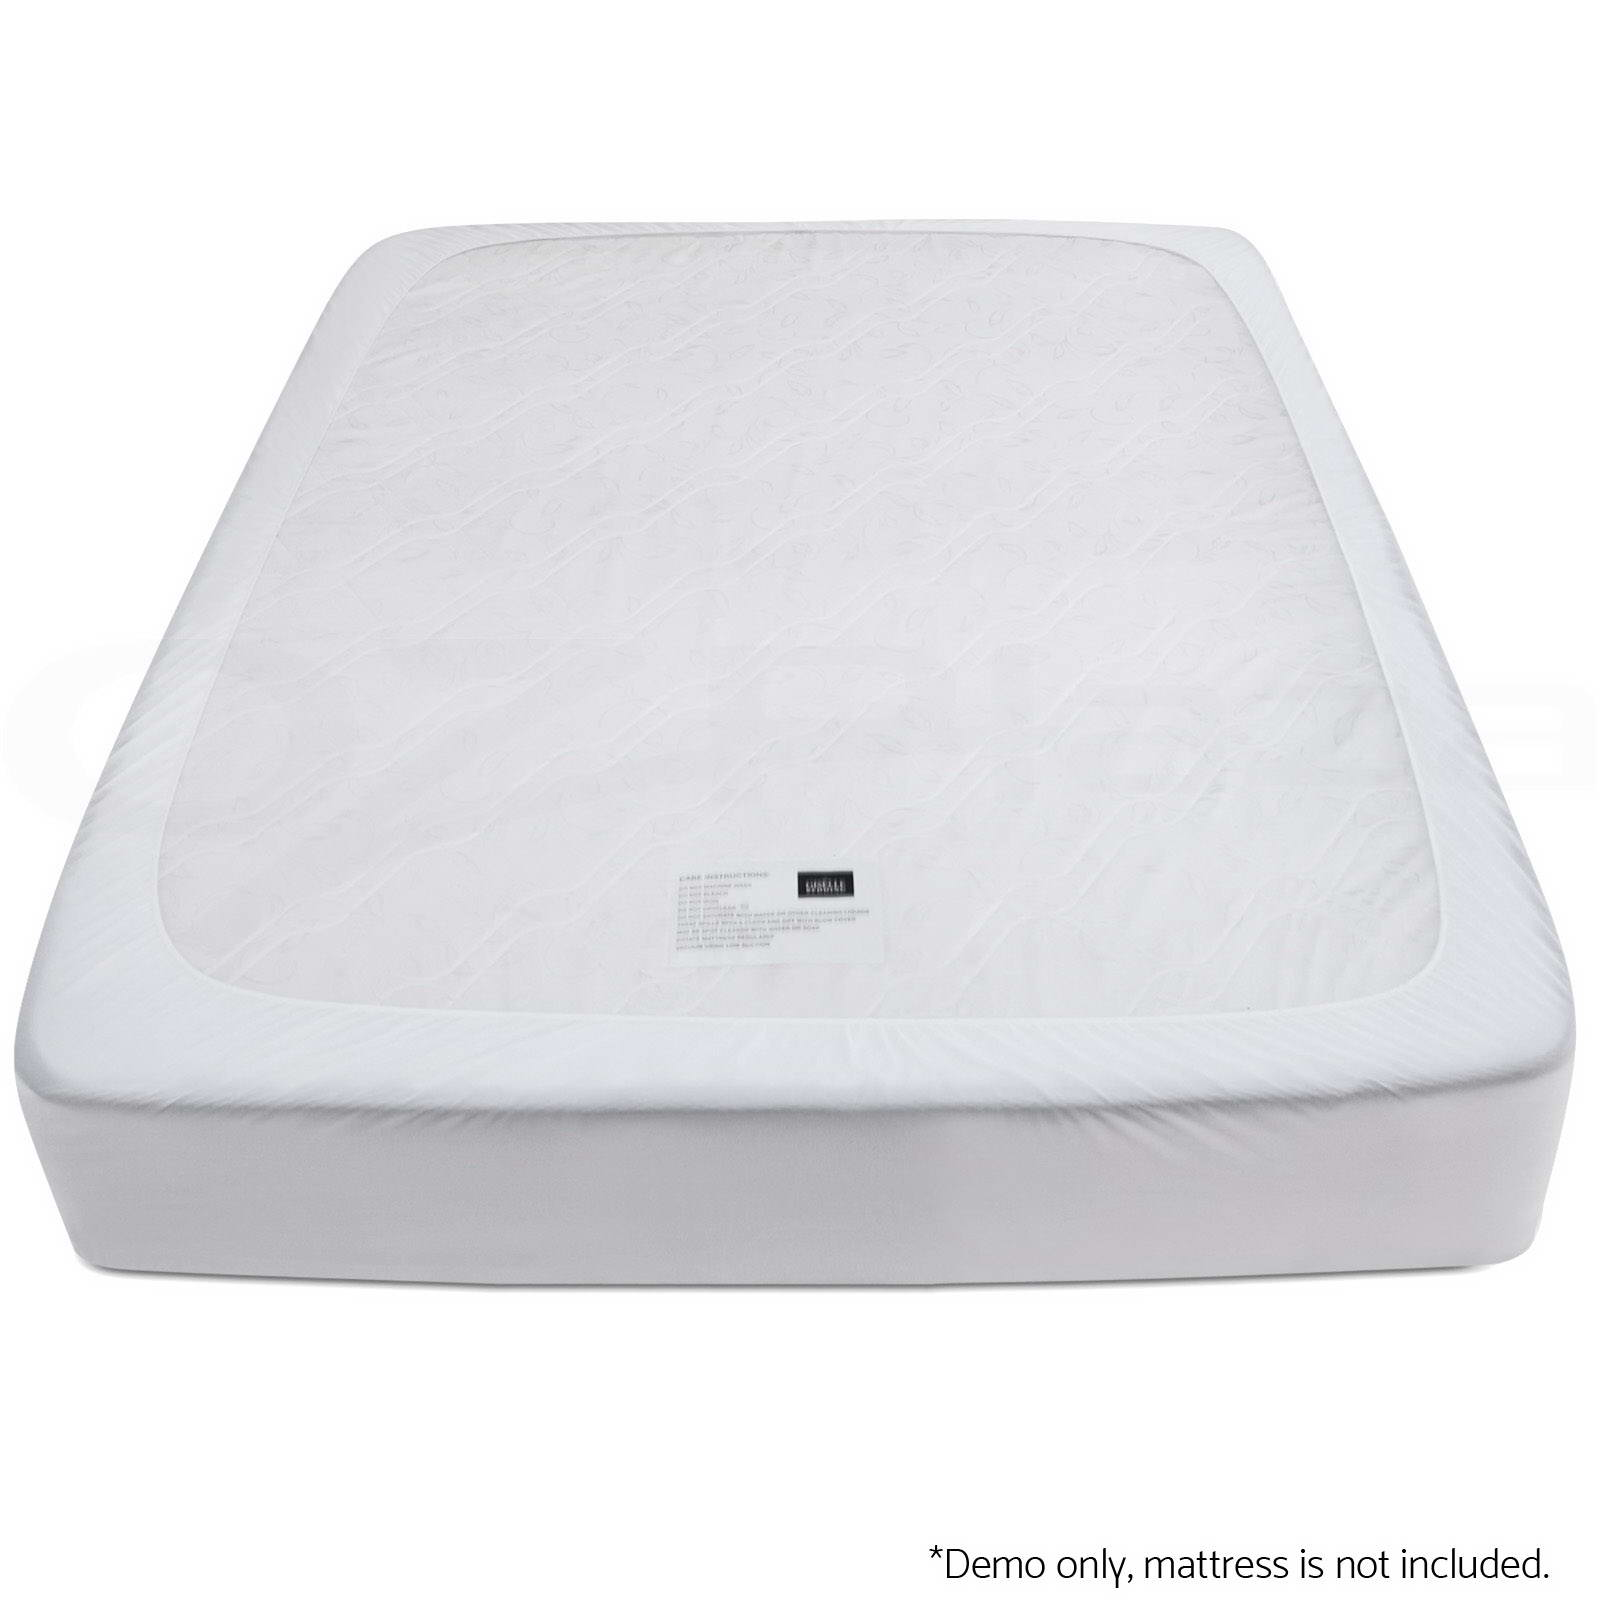 Cool Gel Memory Foam Mattress Topper Bamboo Fabric Cover All Size 8cm Protector Ebay